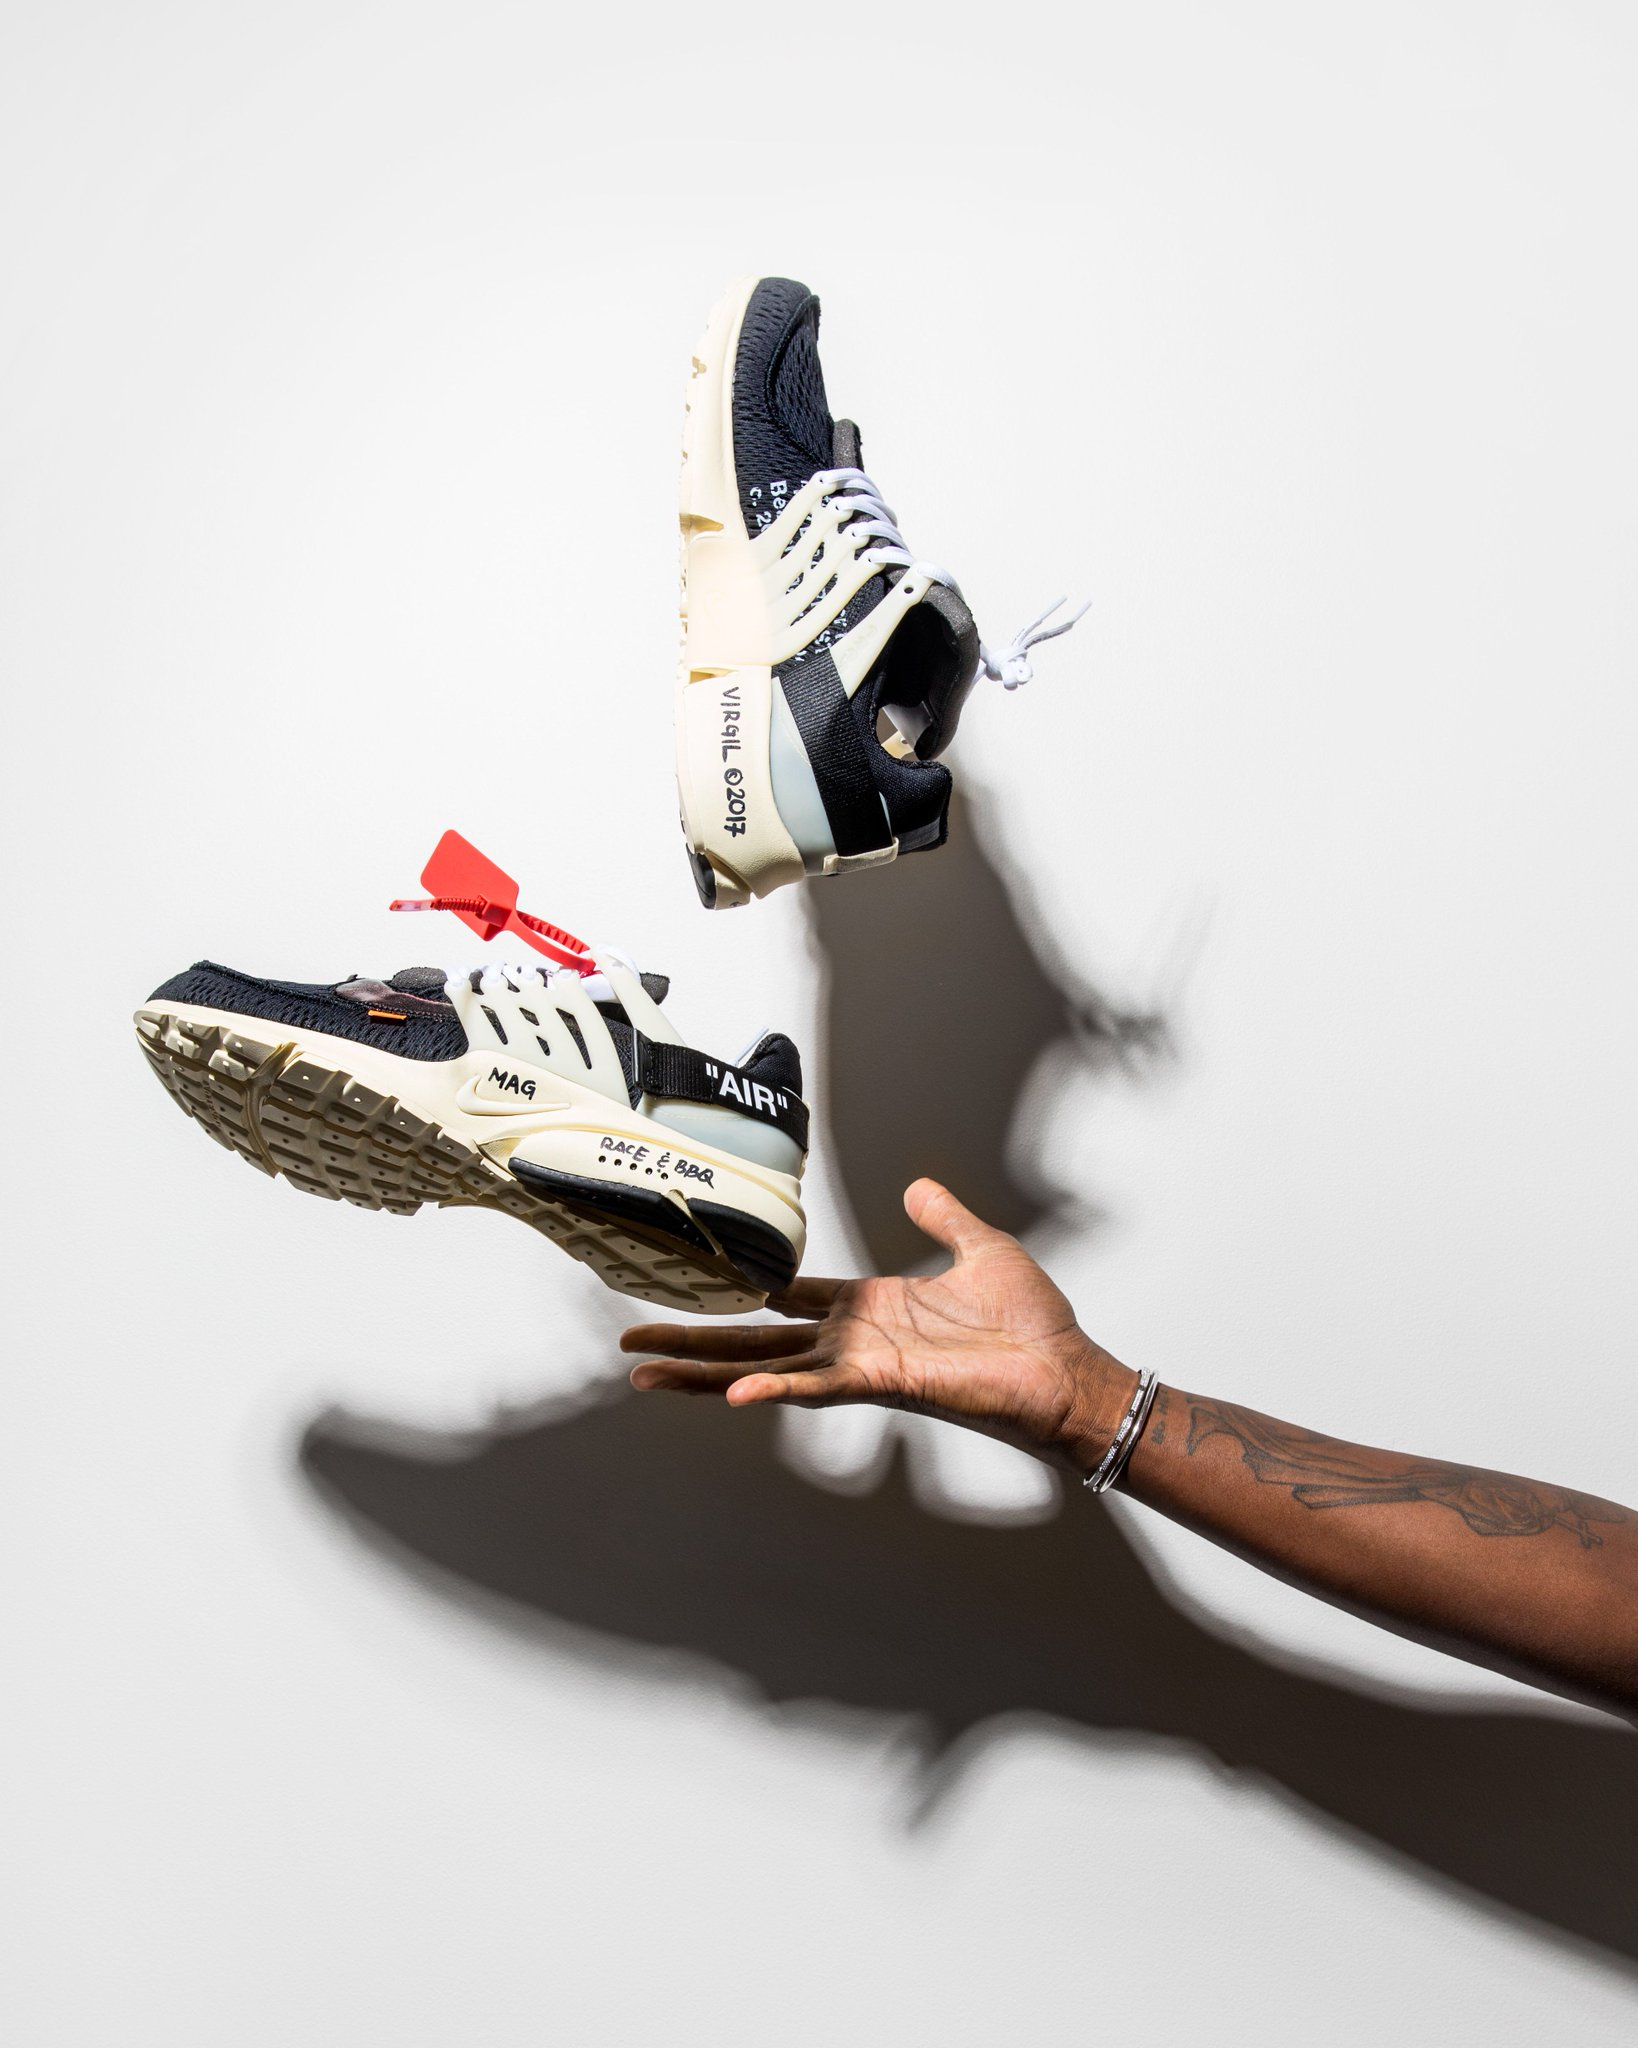 EXCLUSIVE: @VirgilAbloh and @Nike unveil 'The Ten' sneaker collection https://t.co/1oRNZOvtWZ https://t.co/xijET1tqMh